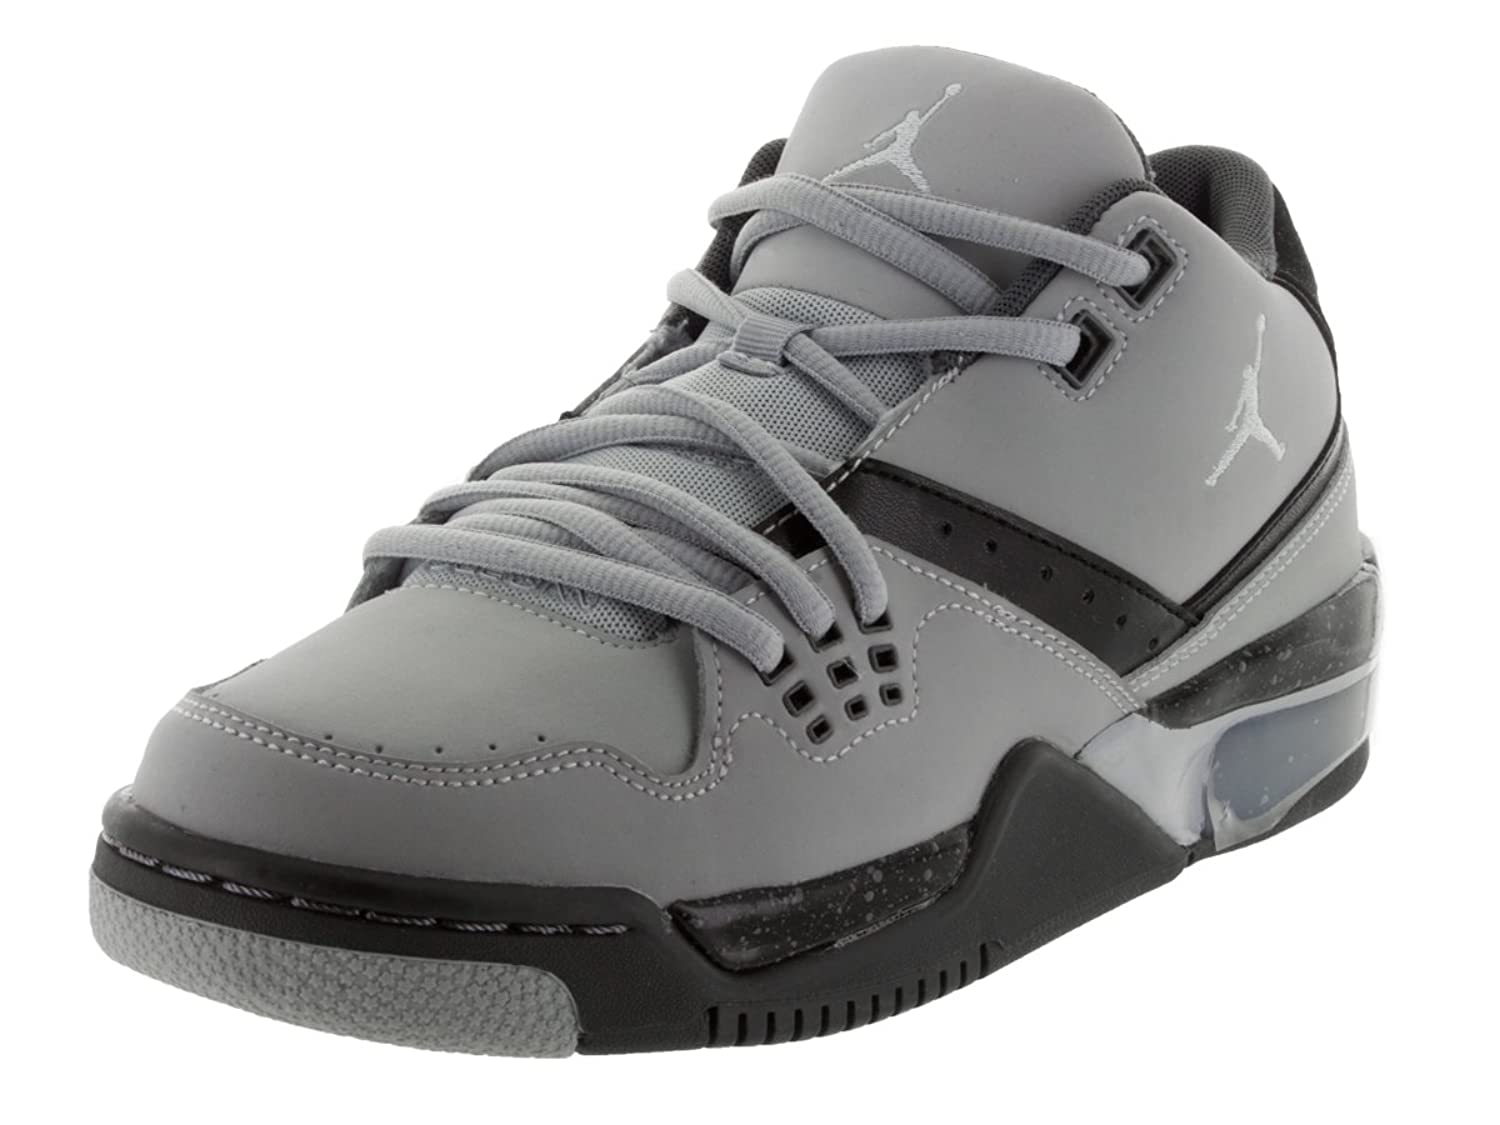 Amazon.com | Jordan Nike Kids Flight 23 BG Wolf Grey/PR Pltnm/Blck/CL Gry  Basketball Shoe 4.5 Kids US | Basketball